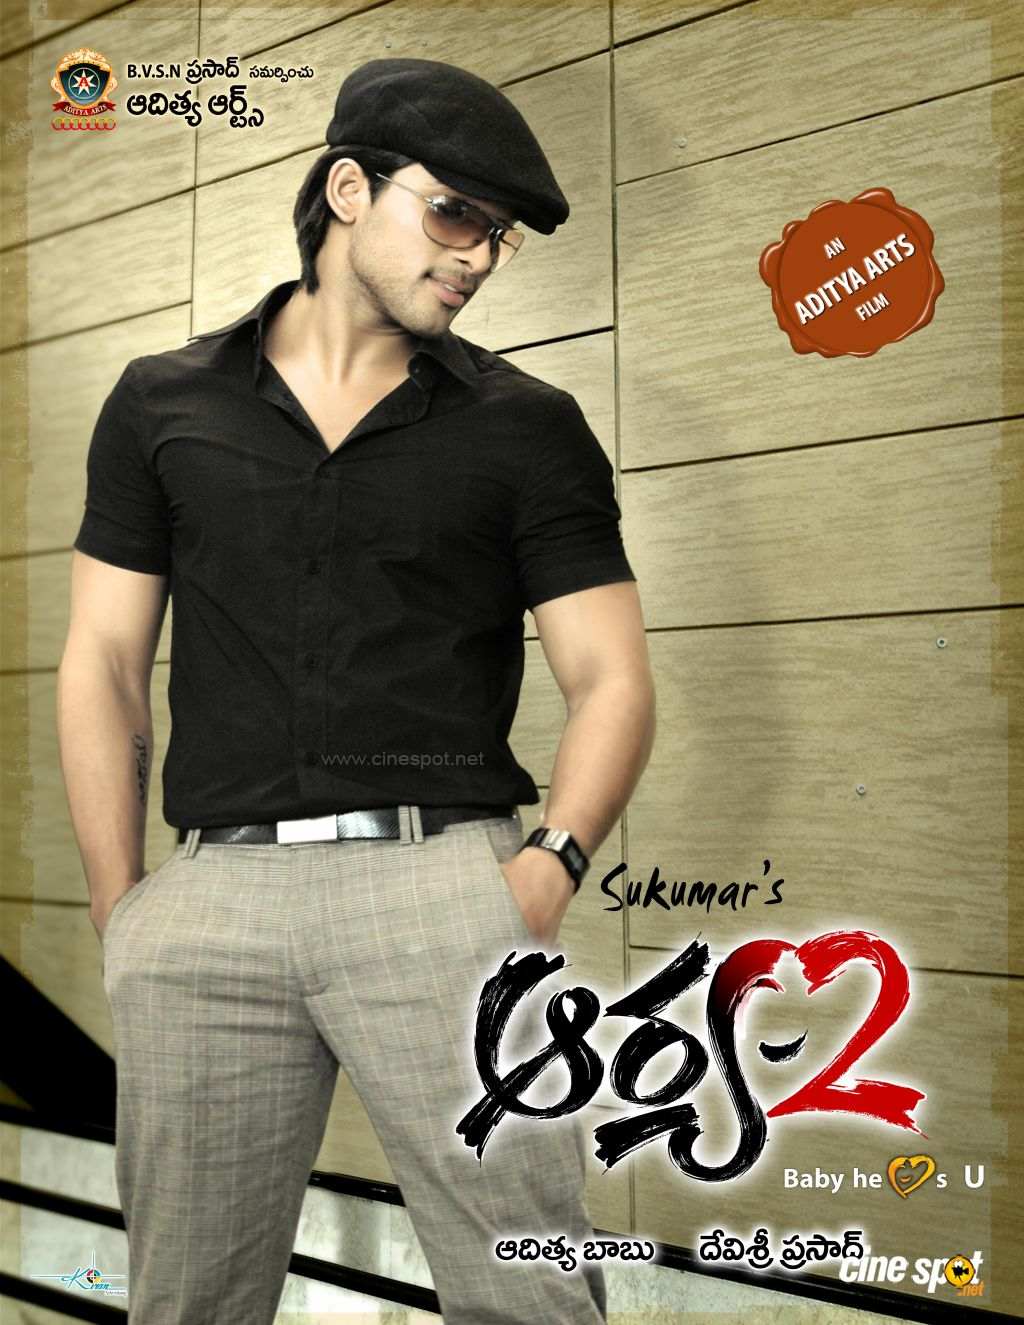 Arya 2 200 9xmovies download,Arya 2 200 khatrimaza download,Arya 2 200 world4ufree download,Arya 2 200 world4ufree download,Arya 2 200 extramovies download,Arya 2 200 south movie